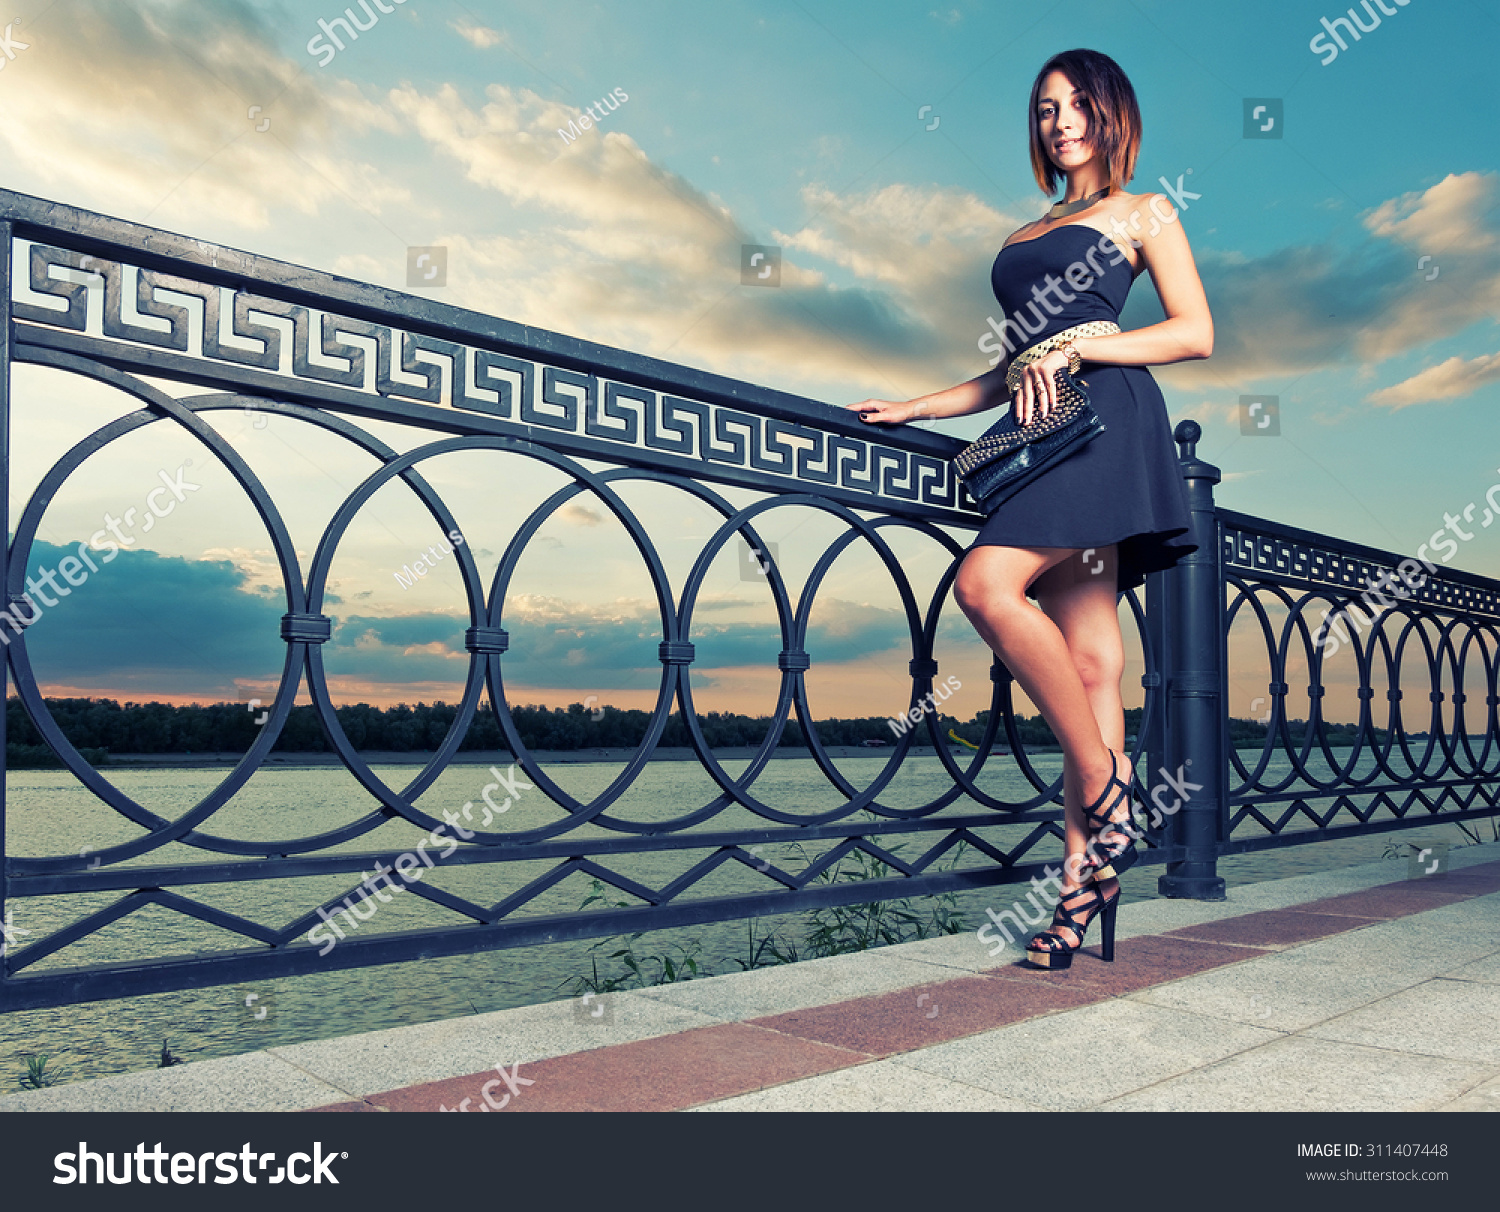 Fashionable women is posing outdoors with trendy clutch covered with rivets in hands. Full Length Portrait of Beautiful Young Woman near Ornate Metal Fence. Dramatic sky. Toned image Place for text